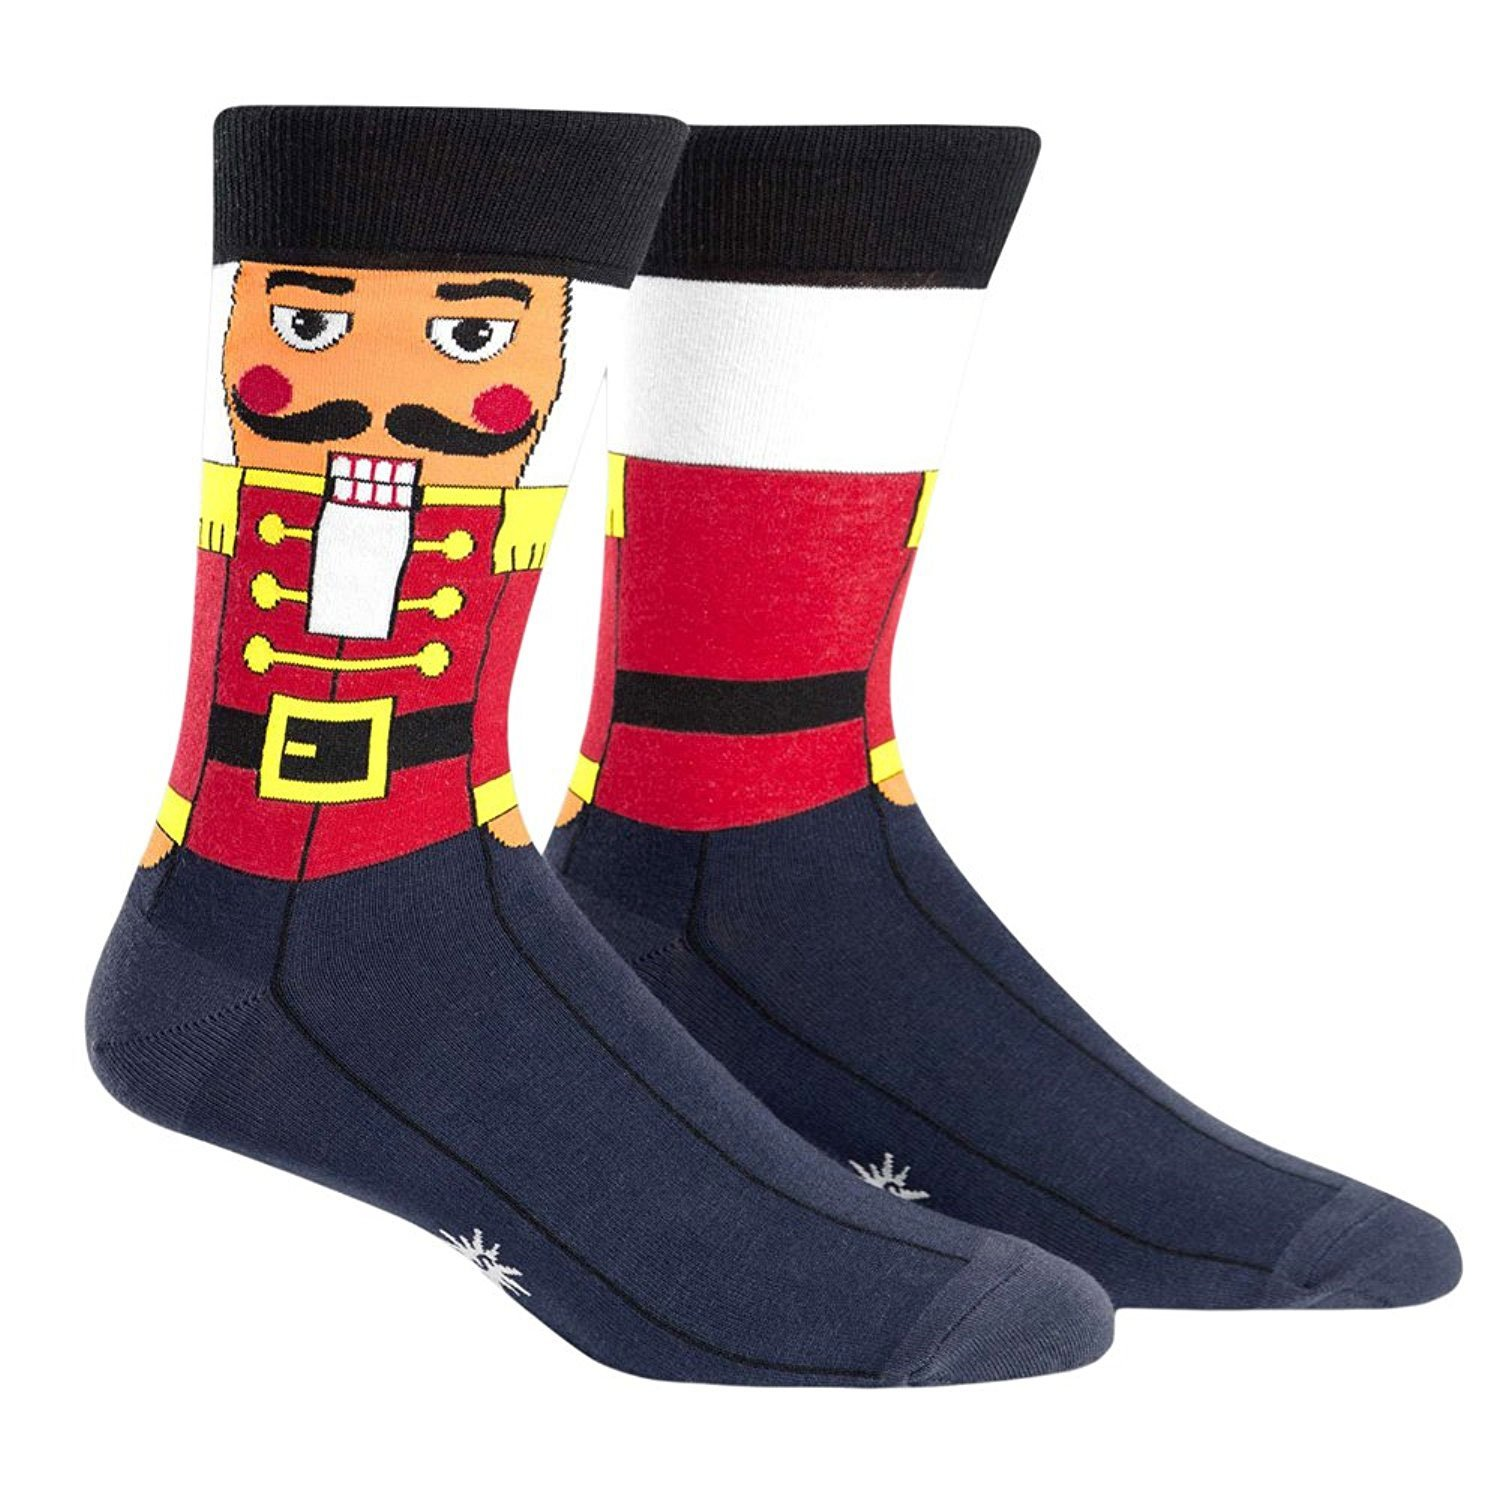 Sock It to Me Mens Crew Holiday